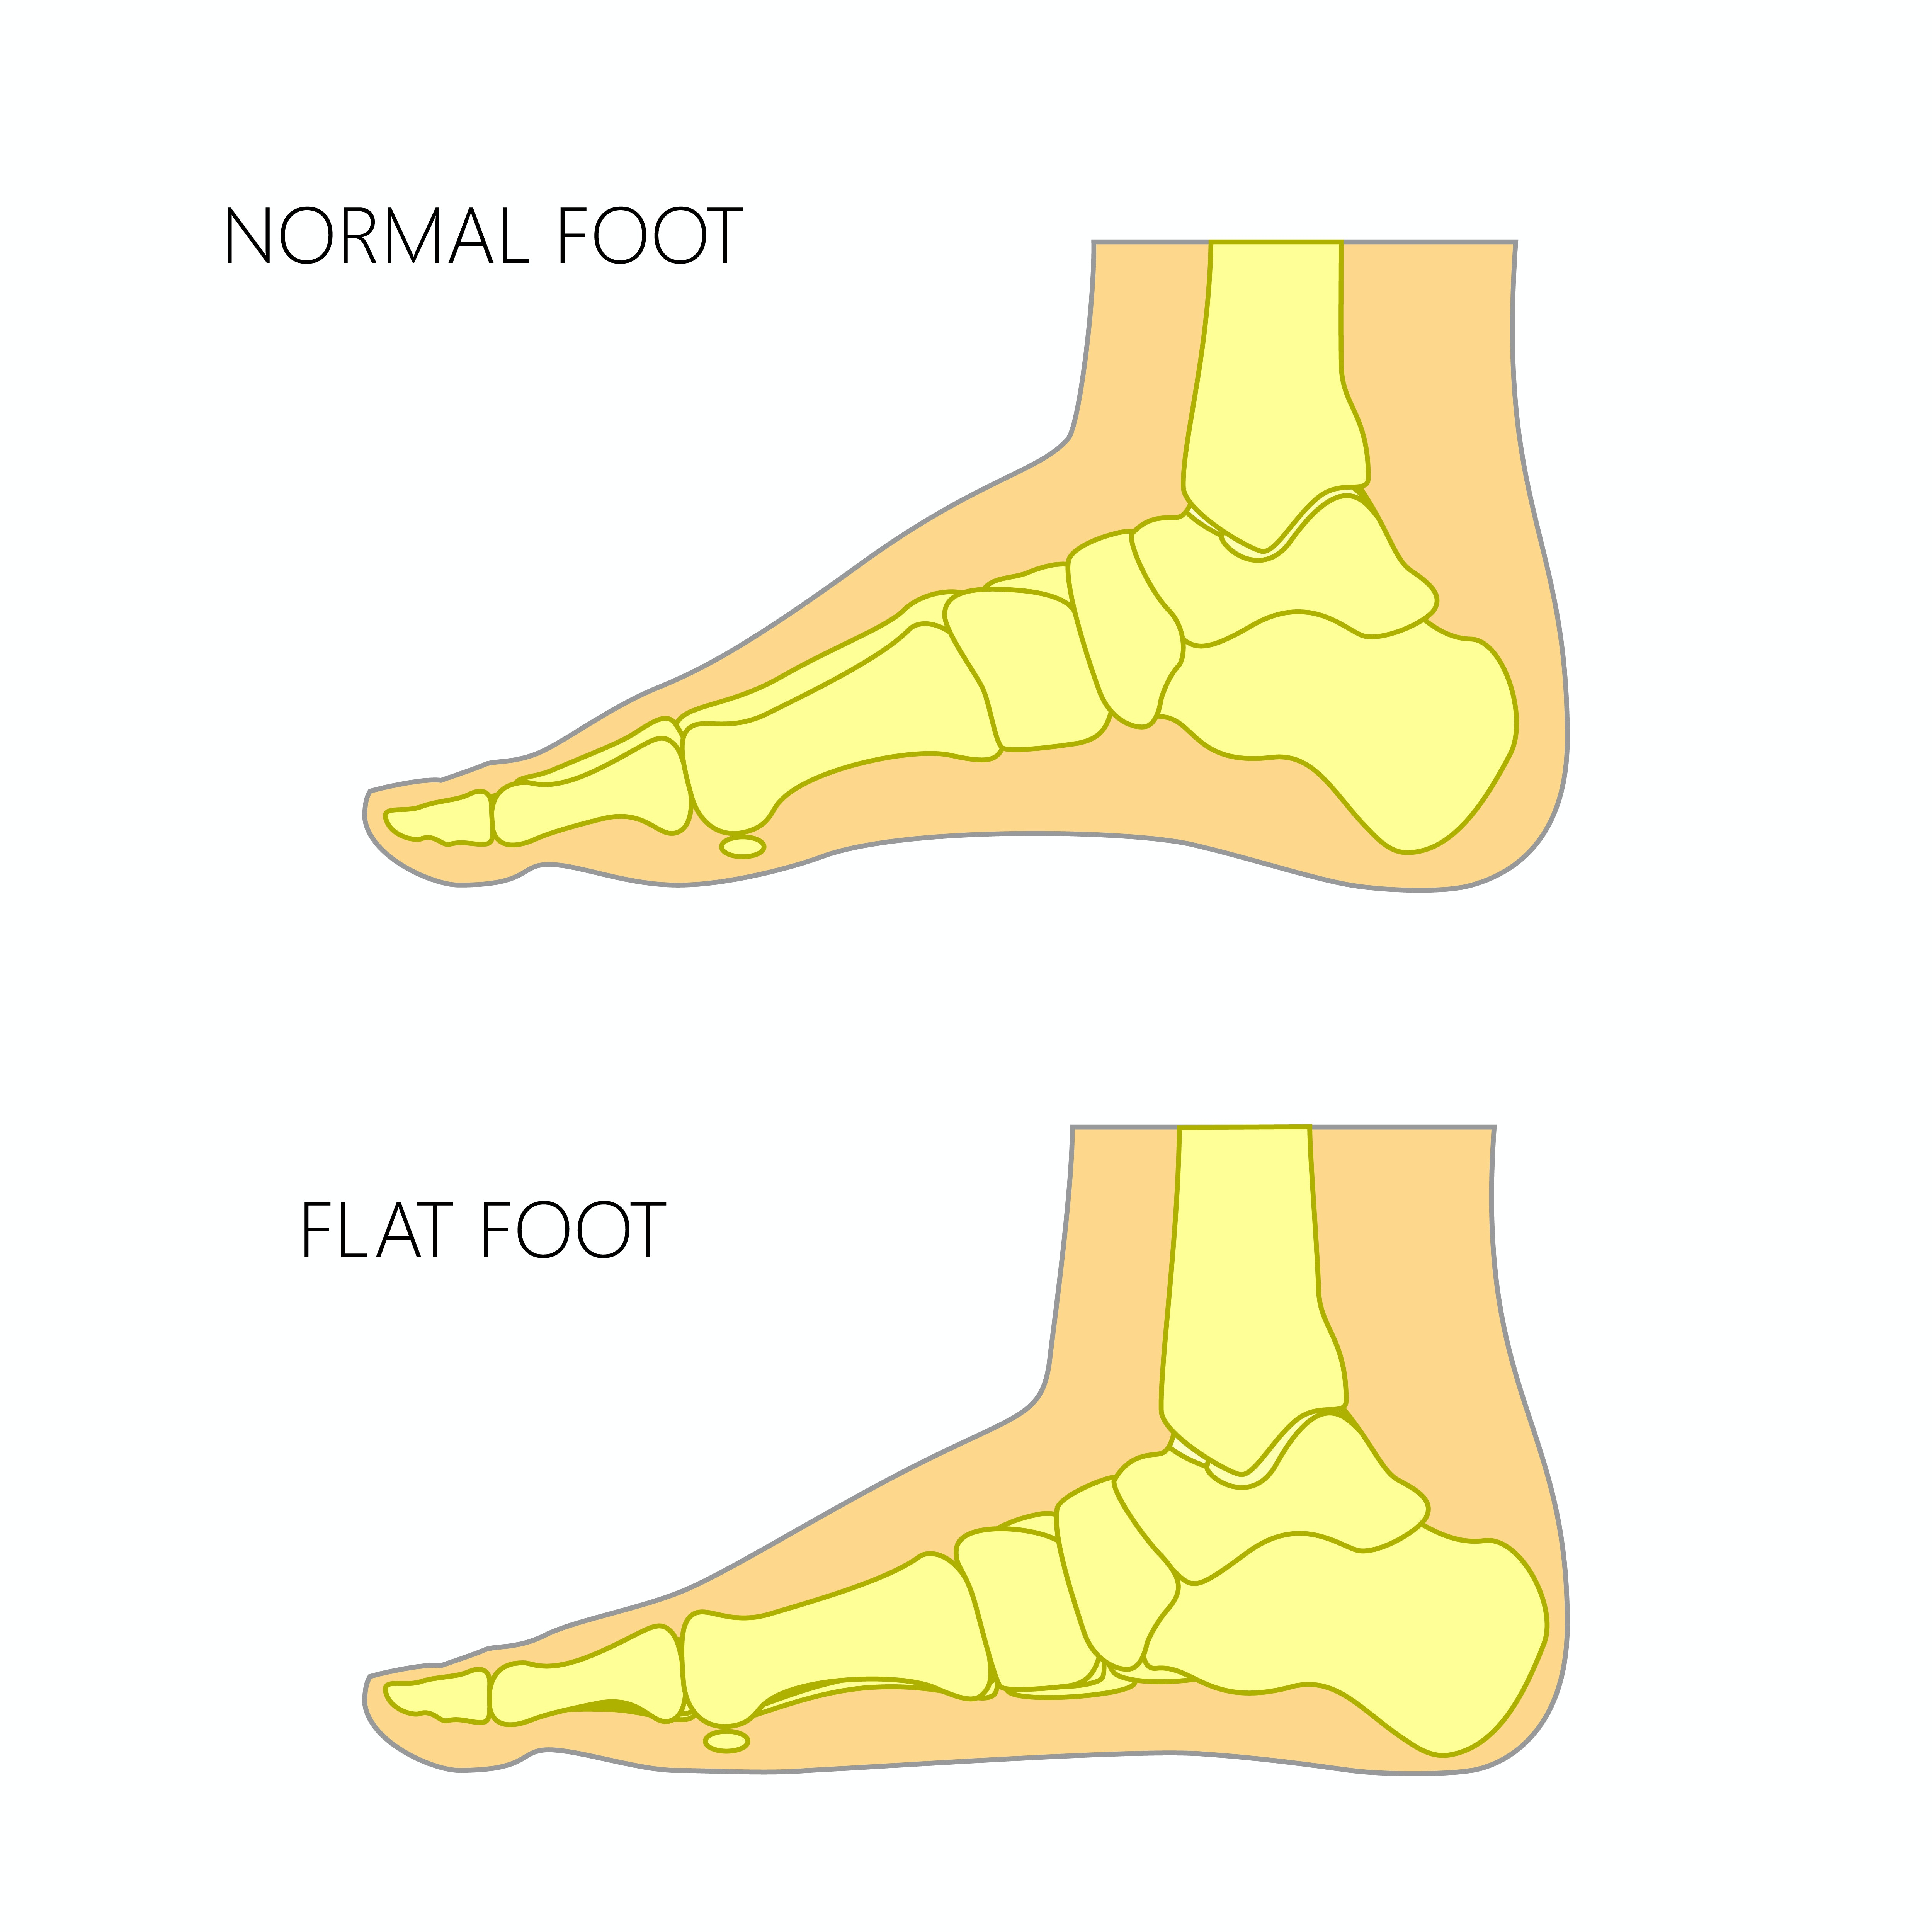 How do you treat flat footed run